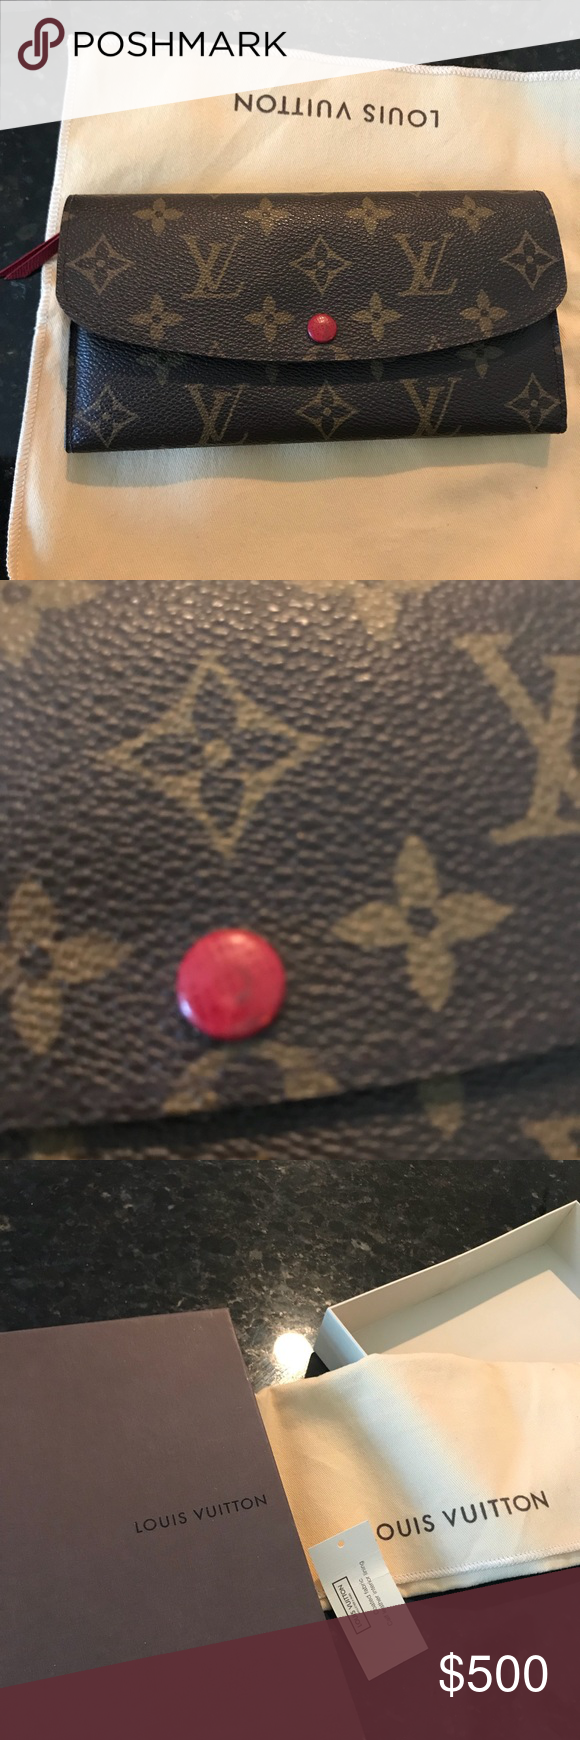 9cca594c4793 Louis Vuitton Emilie Wallet Excellent condition- only flaw is the red  button is a little bid faded but easily replaced at LV store- box and  dustbag included ...